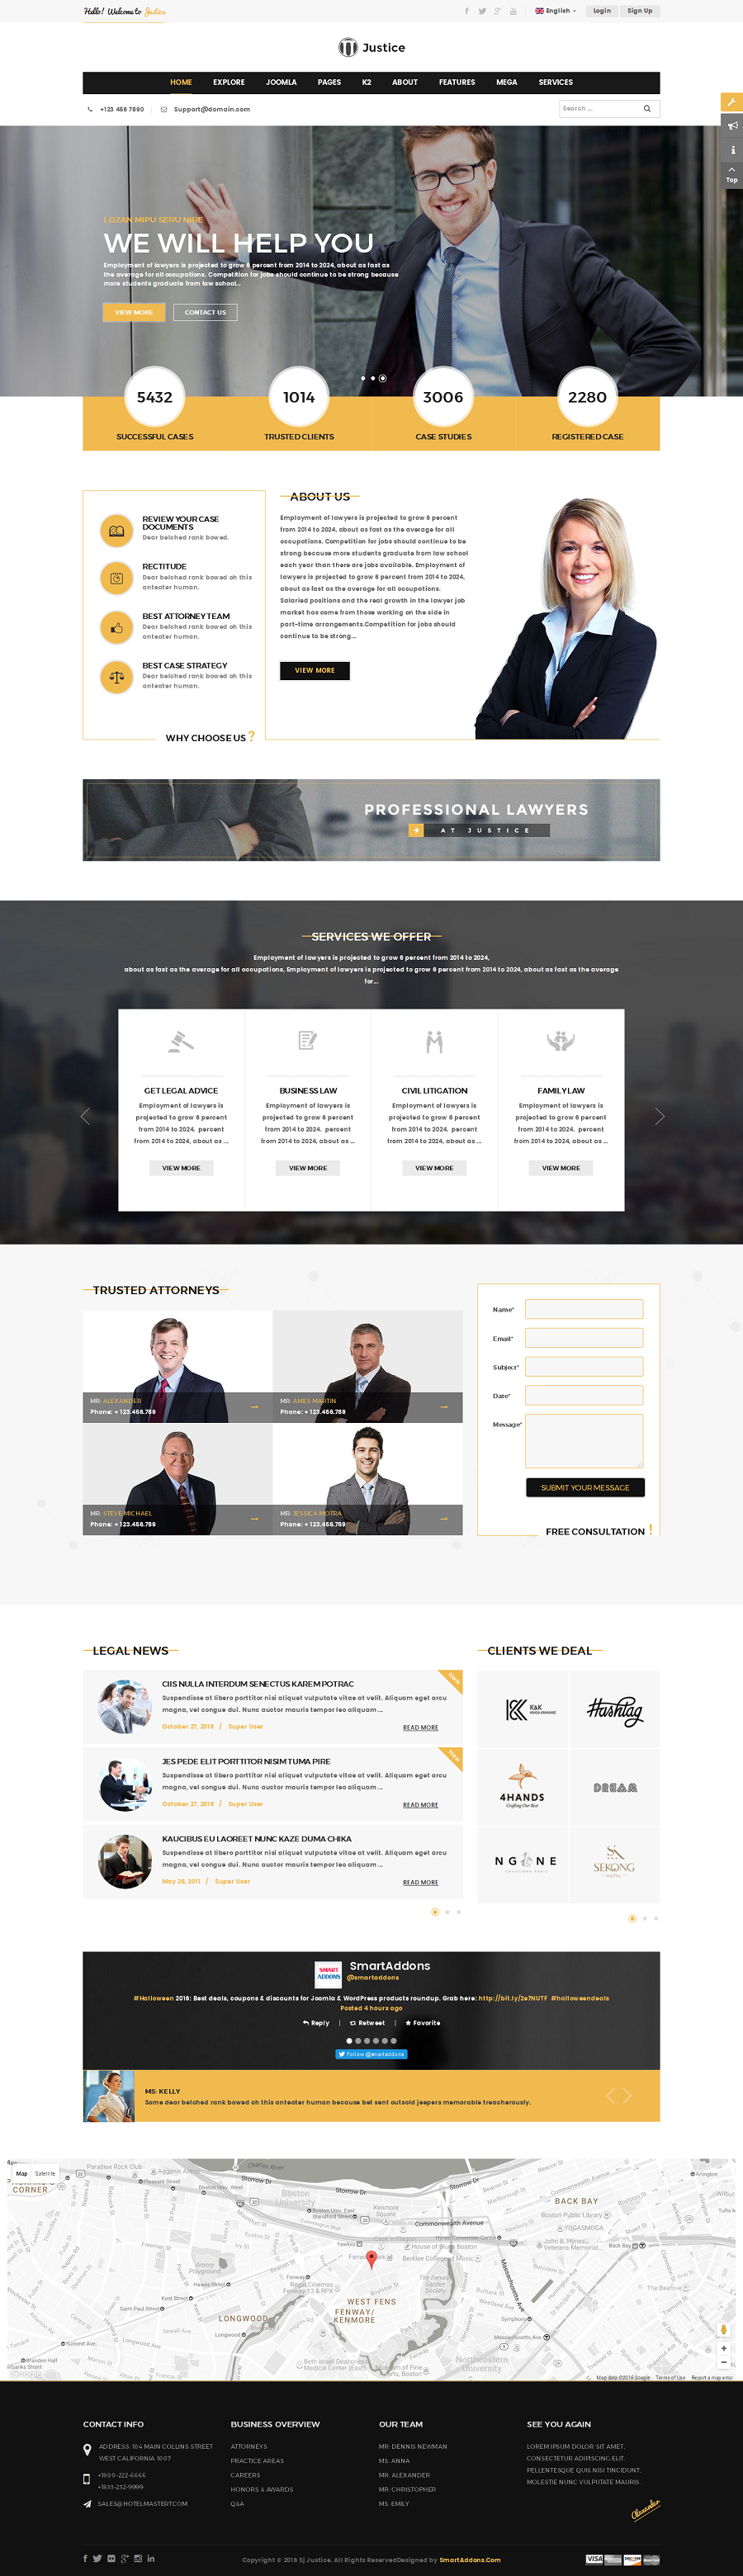 Justice Attorney And Law Firm Joomla Template By SmartAddons - Lawyer website template